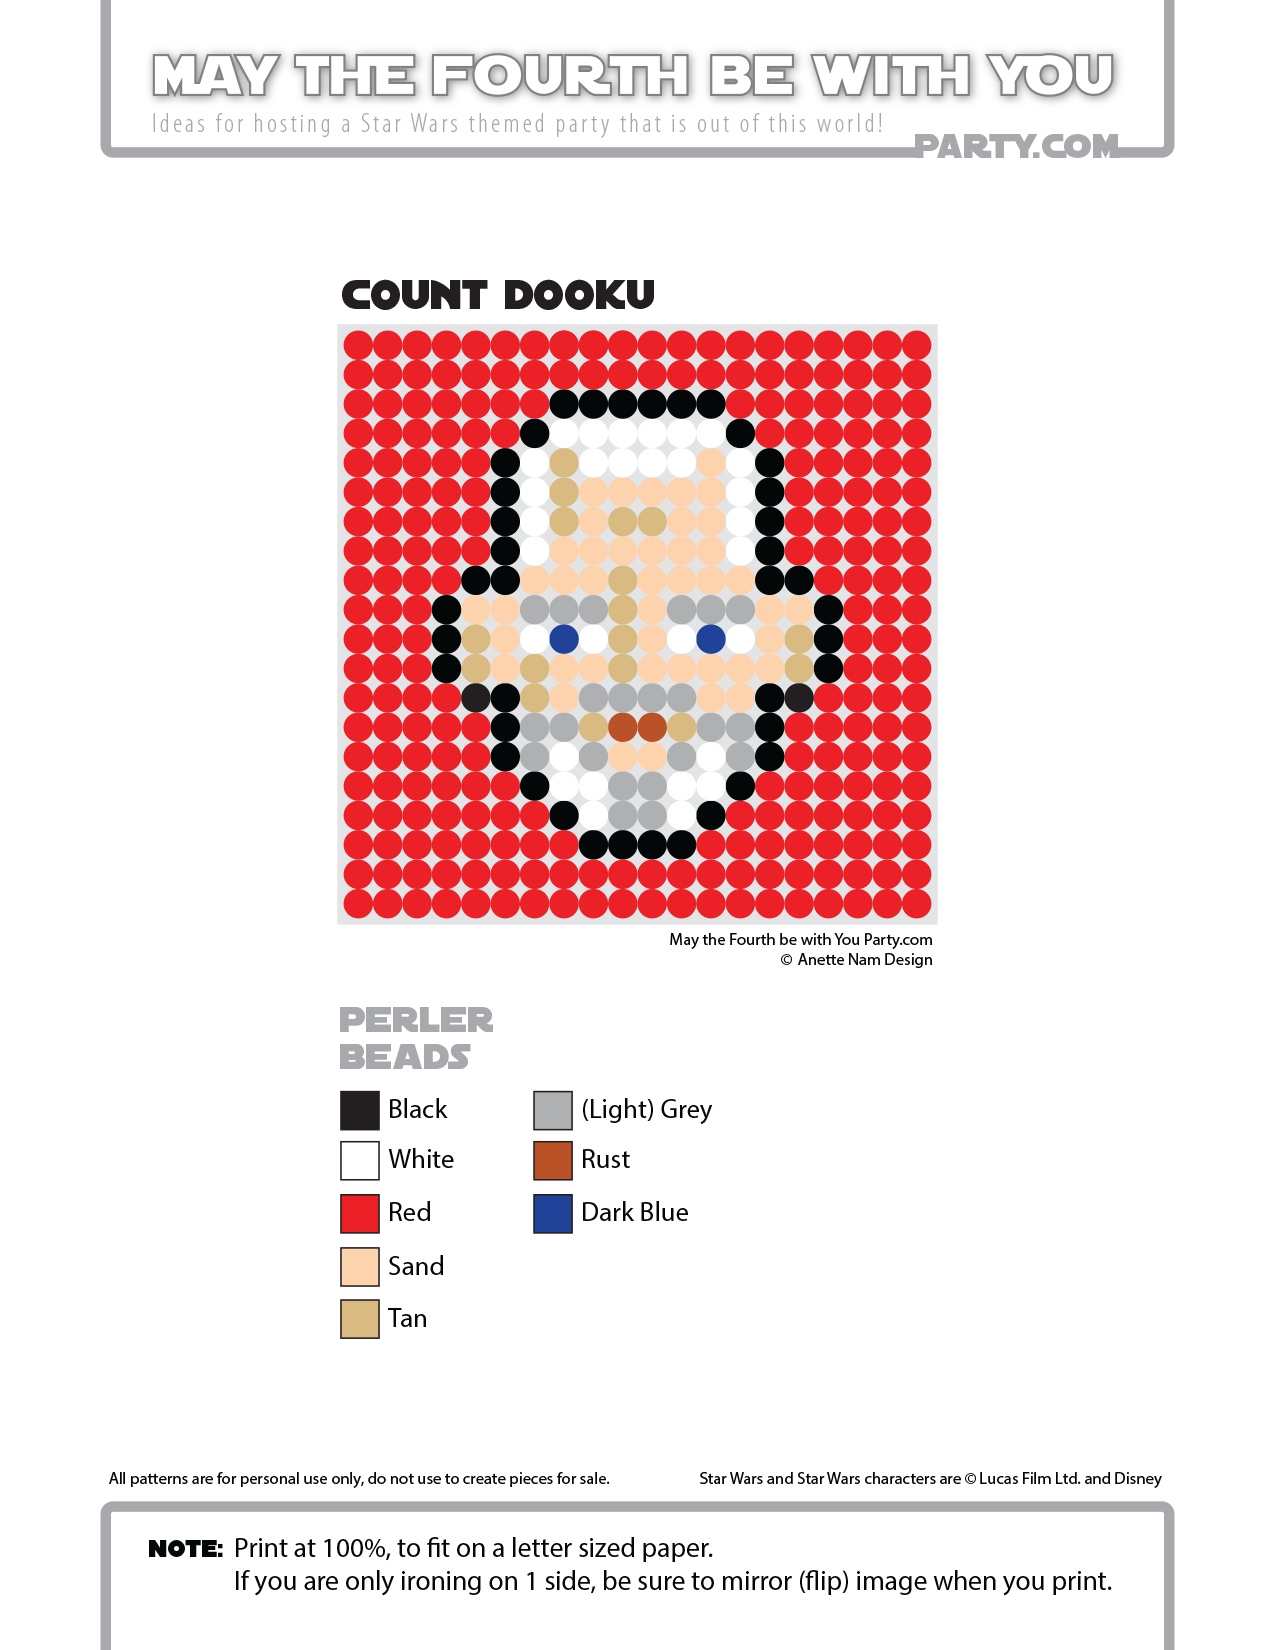 Count dooku perler bead coaster may the fourth be with you party count dooku perler bead coaster may the fourth be with you party bankloansurffo Gallery